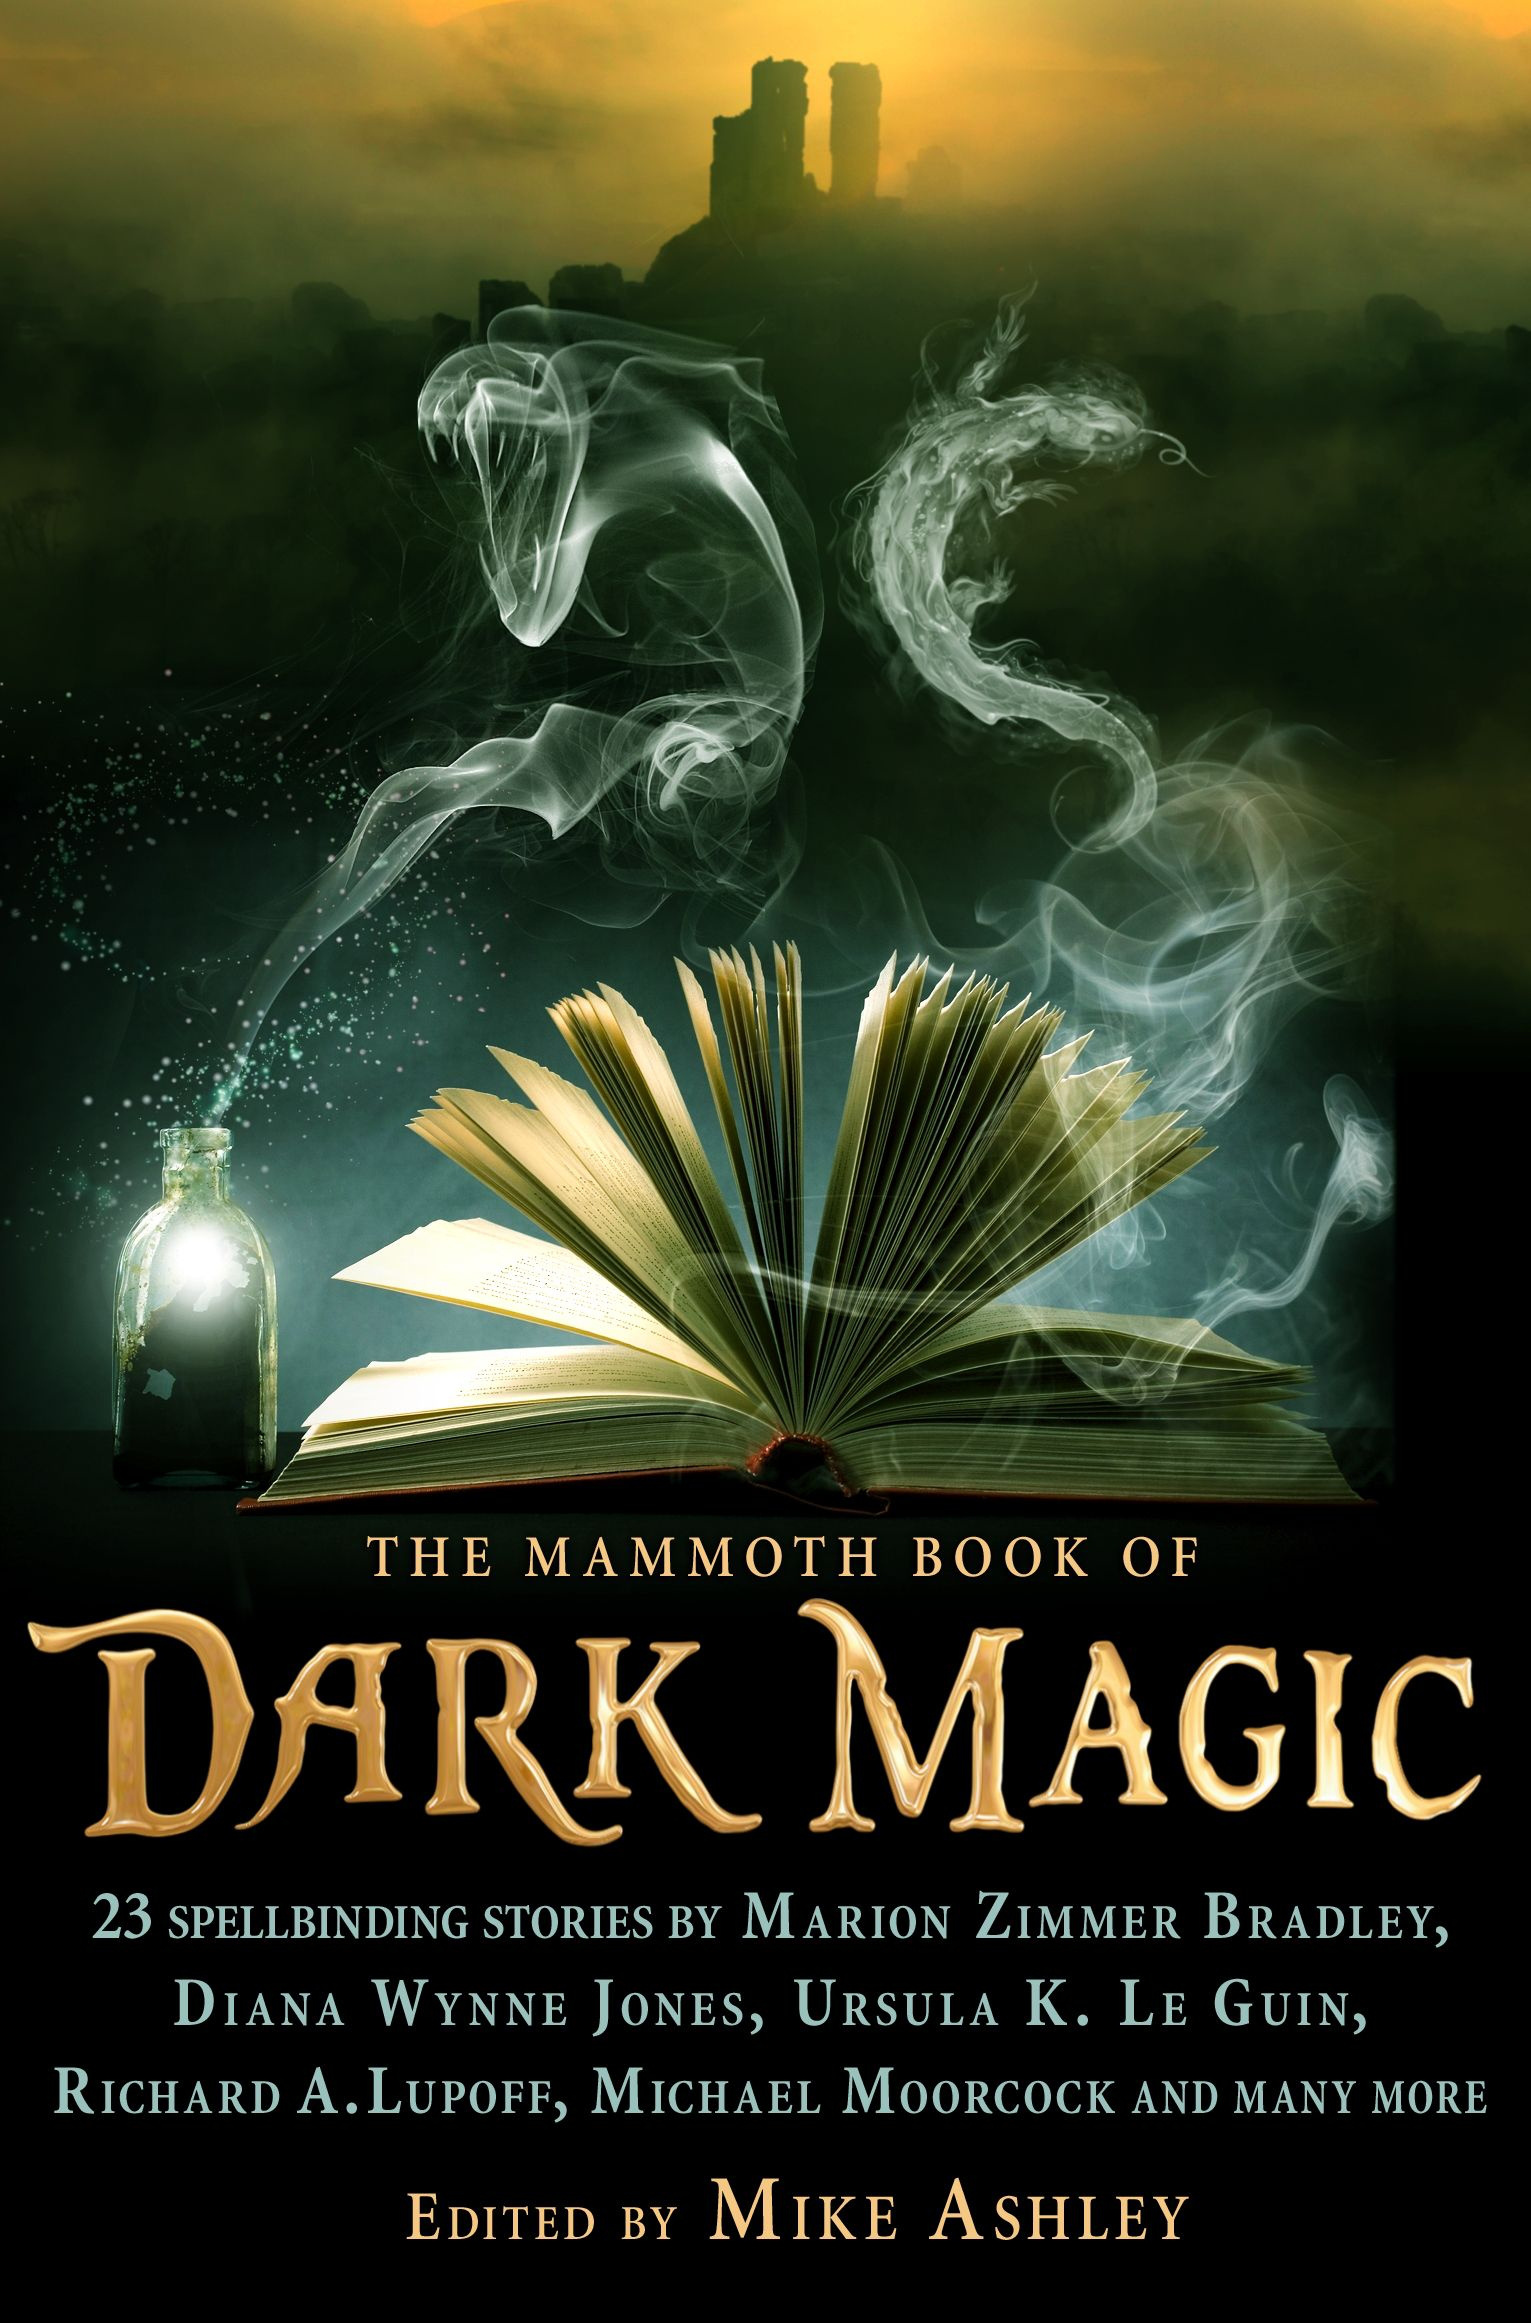 Image result for the mammoth book of dark magic book cover